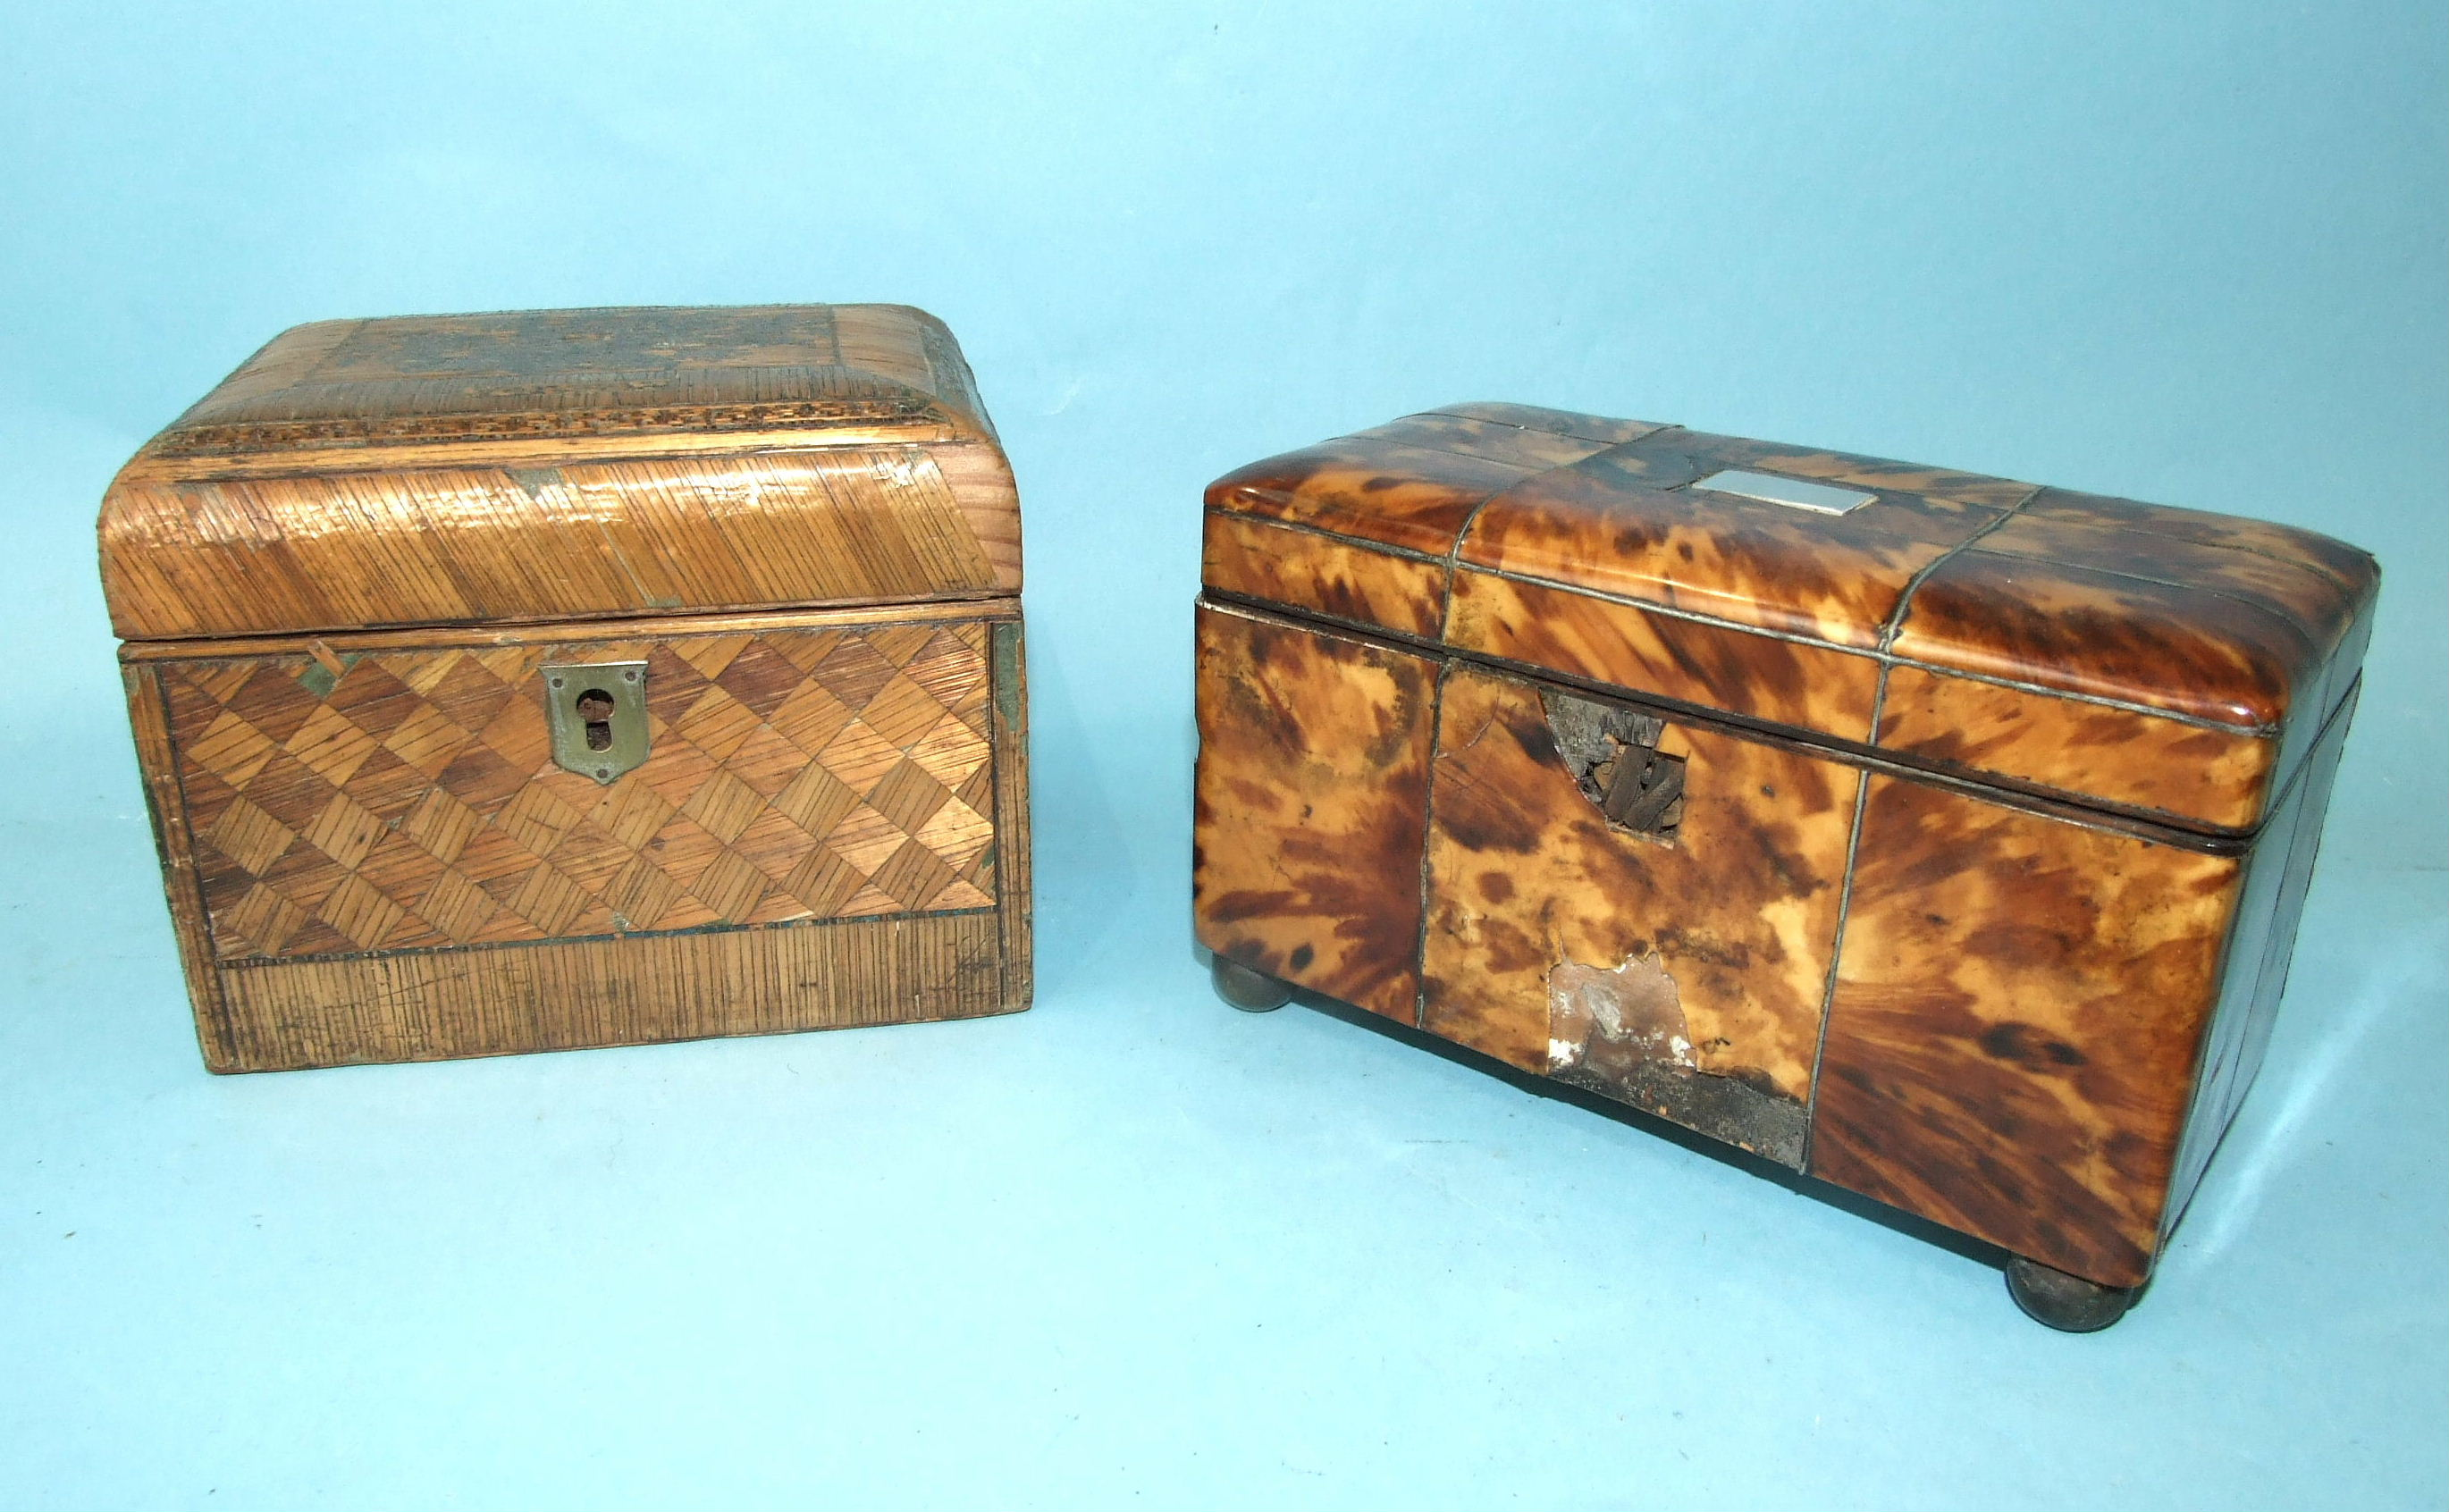 A 19th century straw-work tea caddy, 16cm wide, 12cm high, (losses) and a tortoiseshell two-division